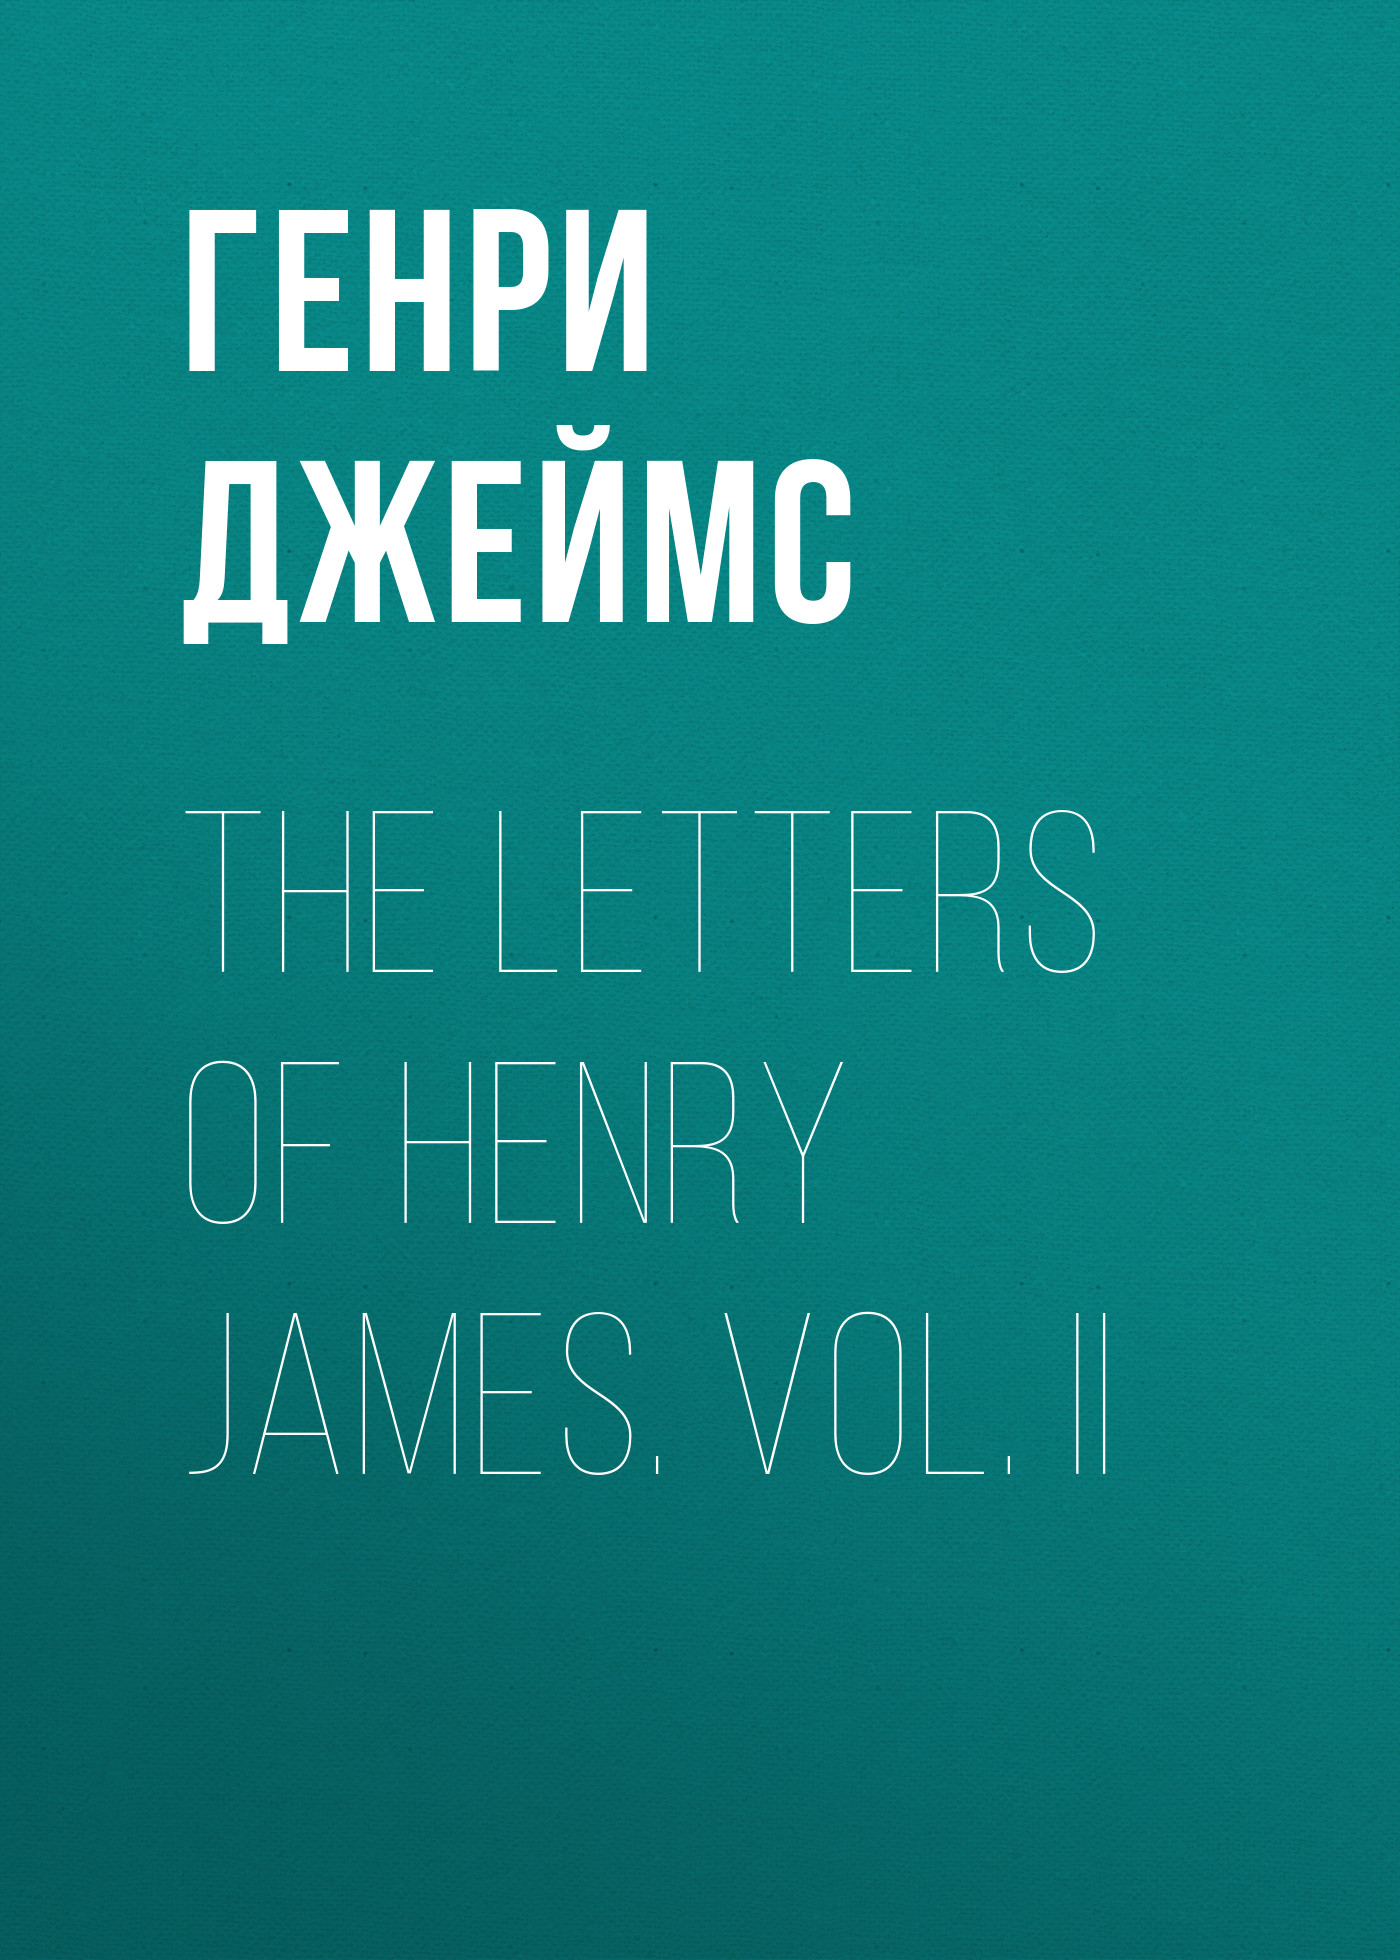 Генри Джеймс The Letters of Henry James. Vol. II aero vac filter bristle brush flexible beater brush 6 armed side brush for irobot roomba 600 series 620 630 650 660 vacuum